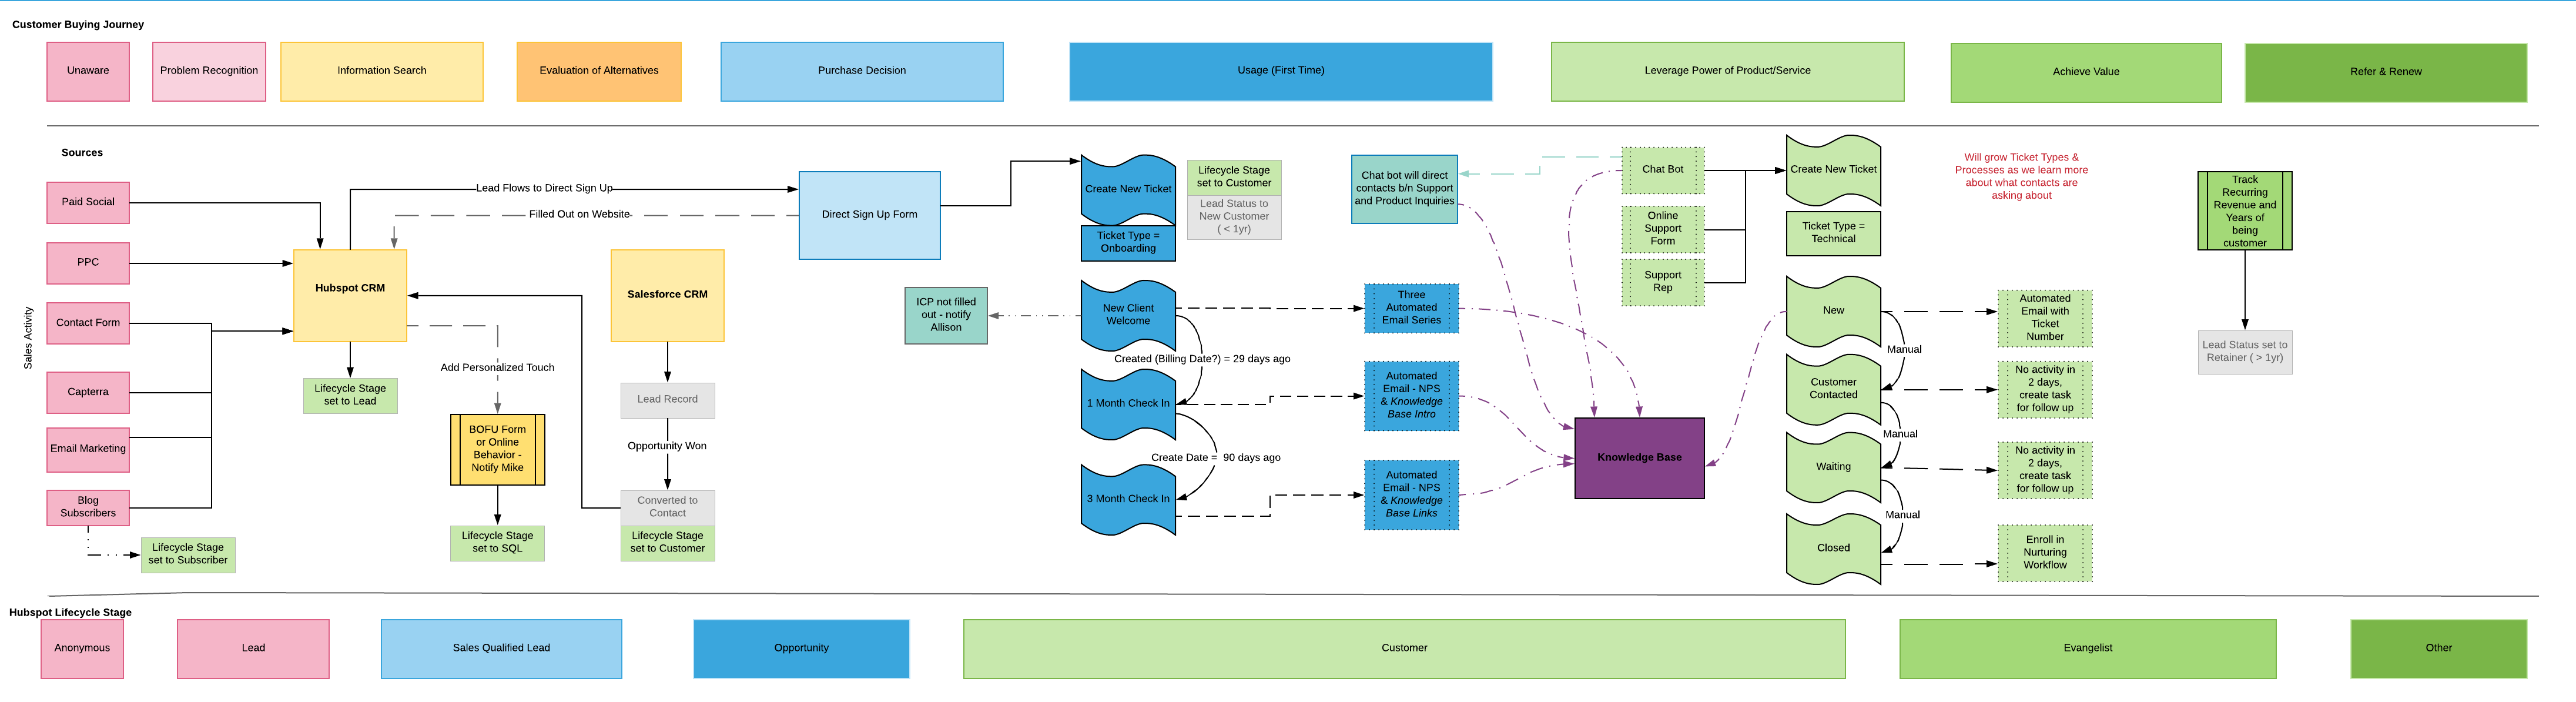 LucidChart architecture map